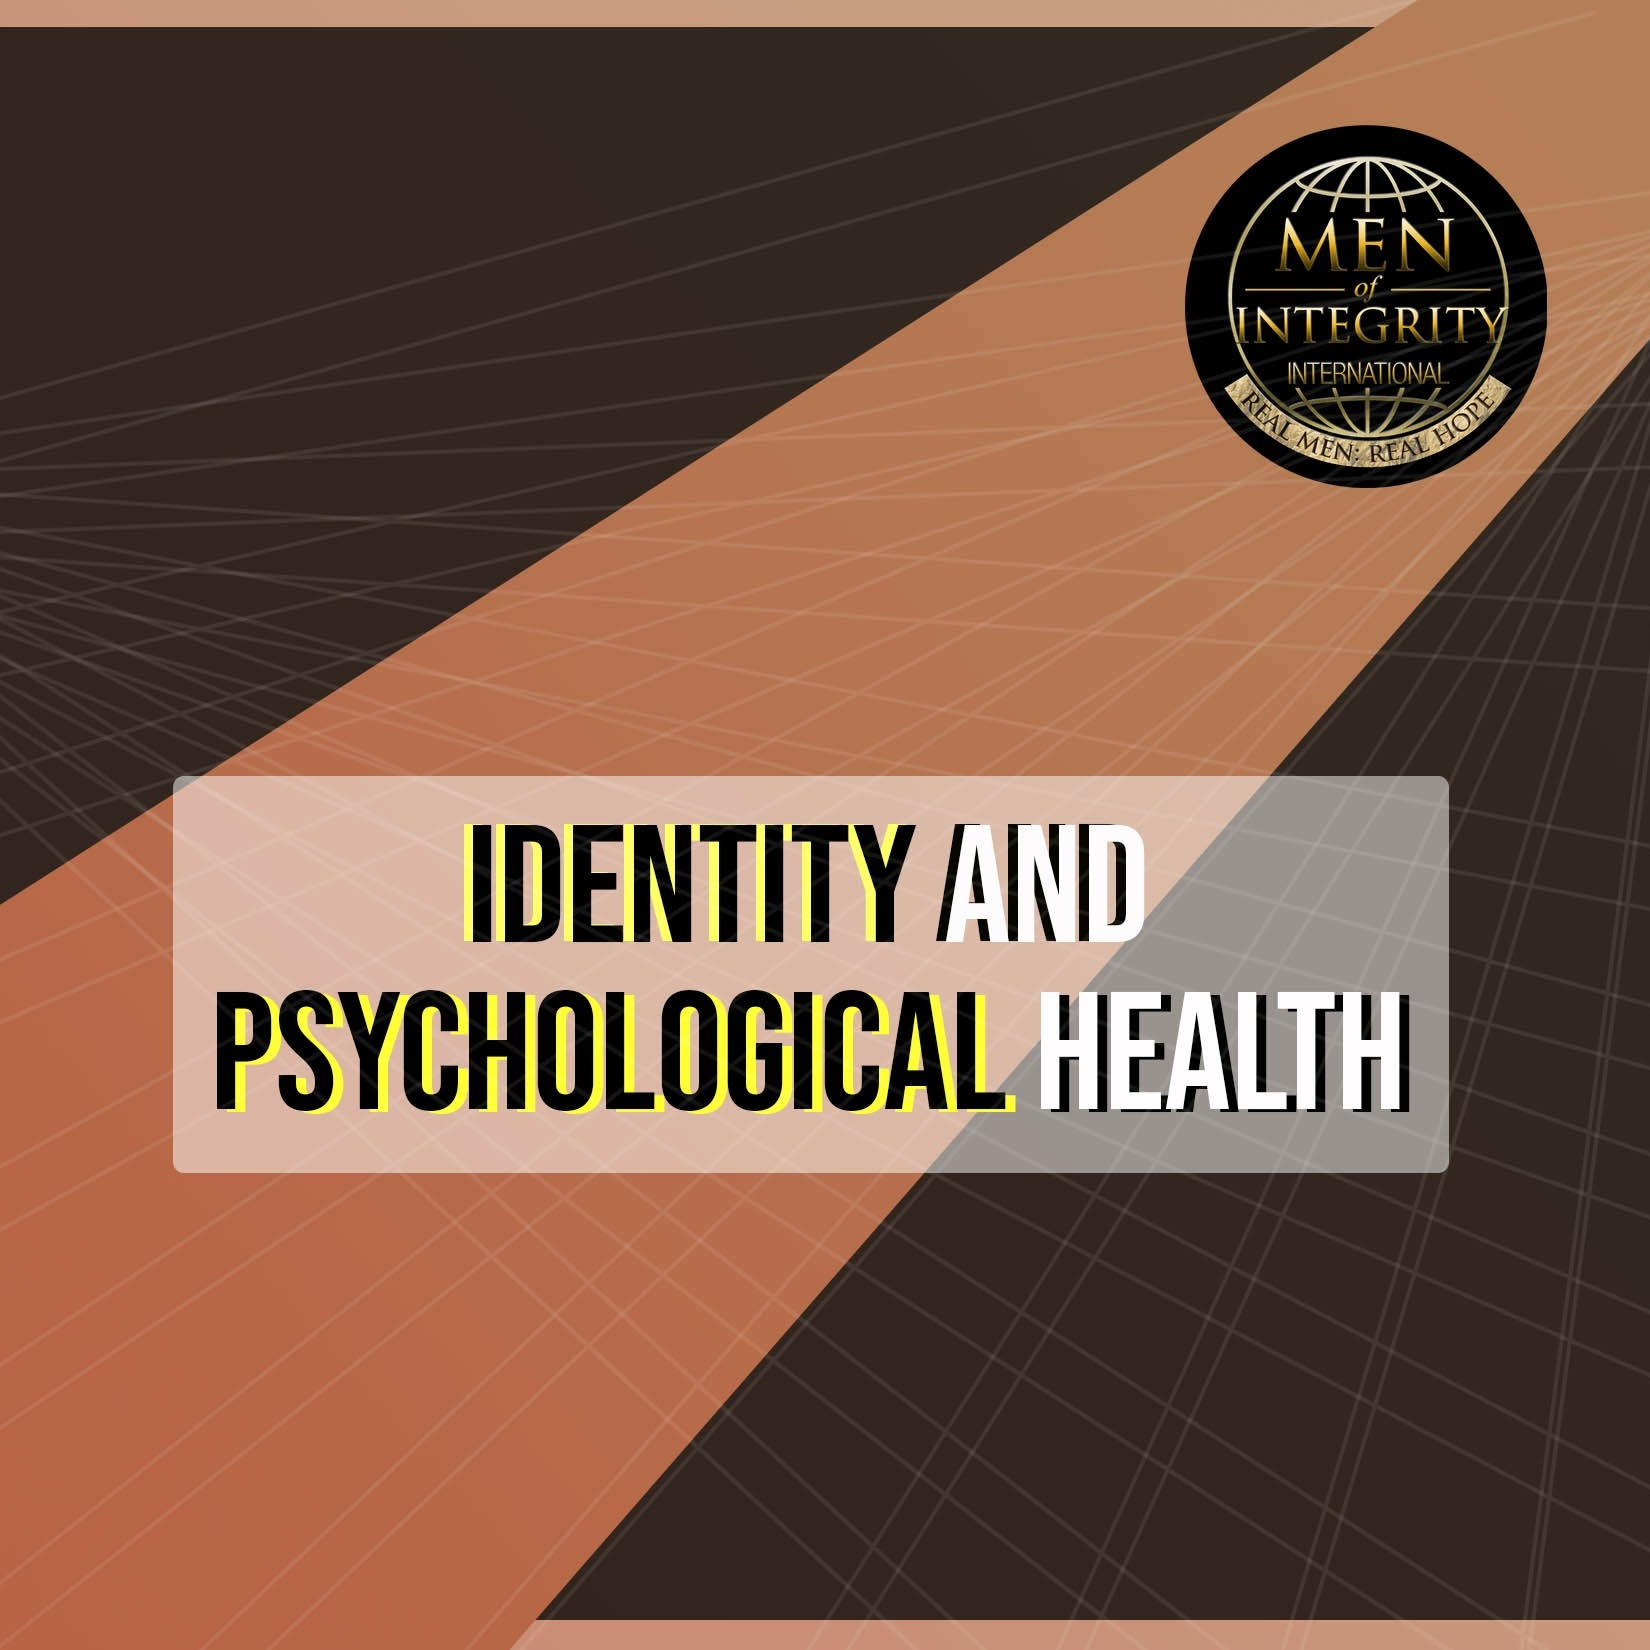 Identity and Psychological Health